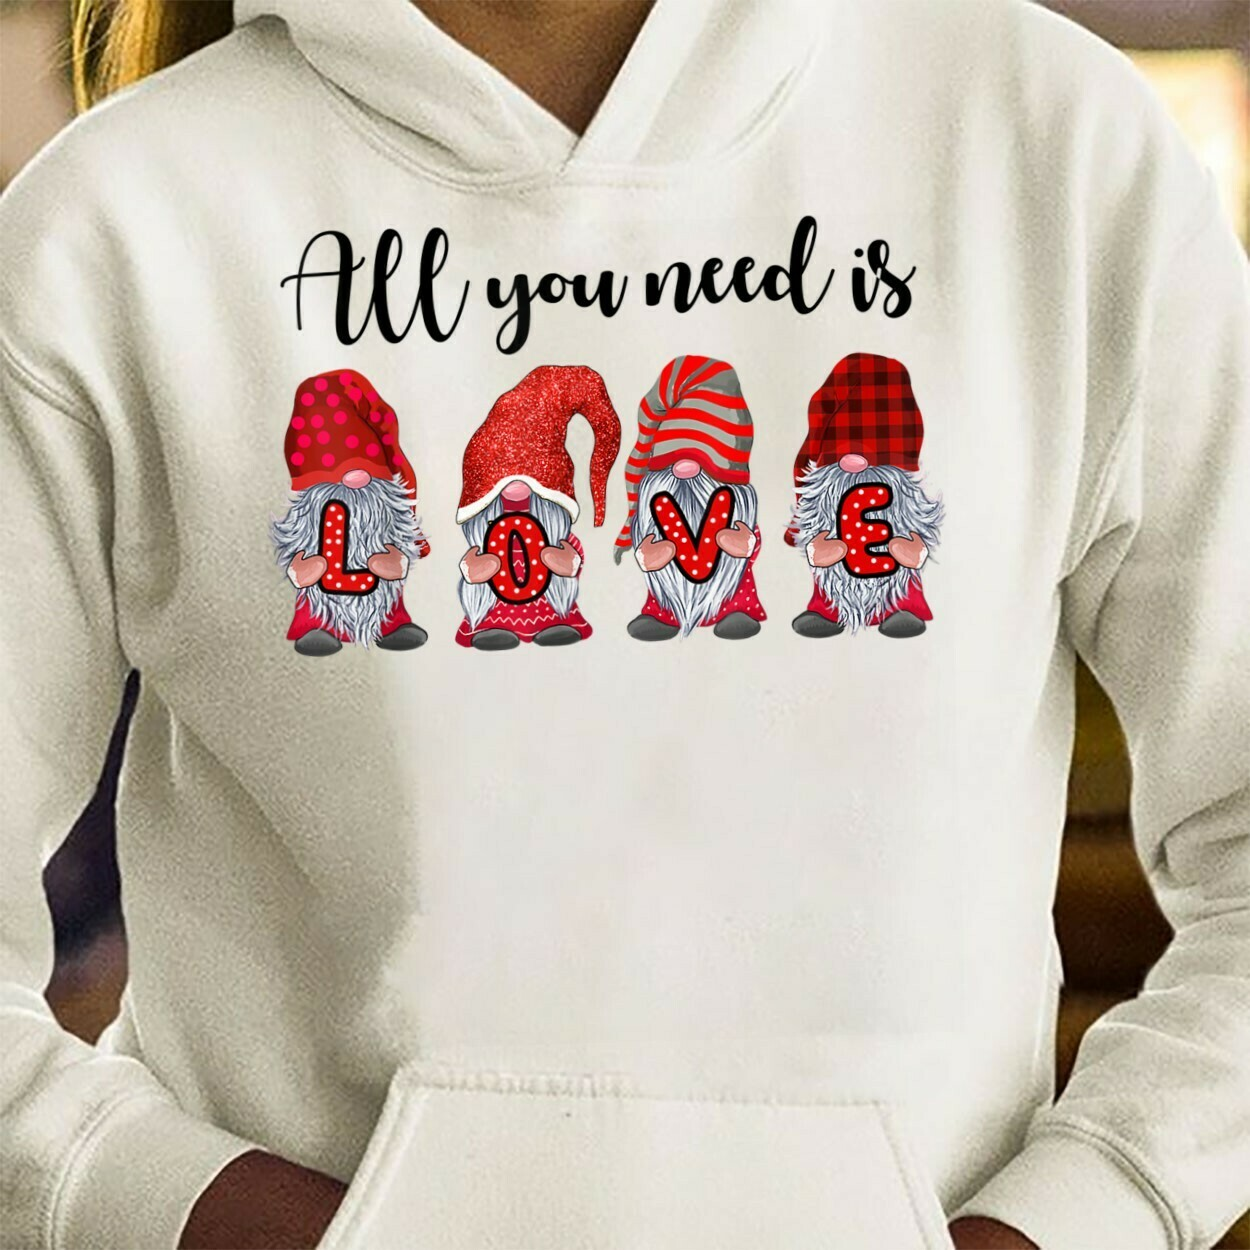 All You Need Is Love Valentine's Day Heart Gnome,Couple Mr and Mrs Gnome Love Valentine,Lovin' All My Gnomies Heart  T-Shirt Hoodie Sweatshirt Sweater Tee Kids Youth Gifts Jolly Family Gifts